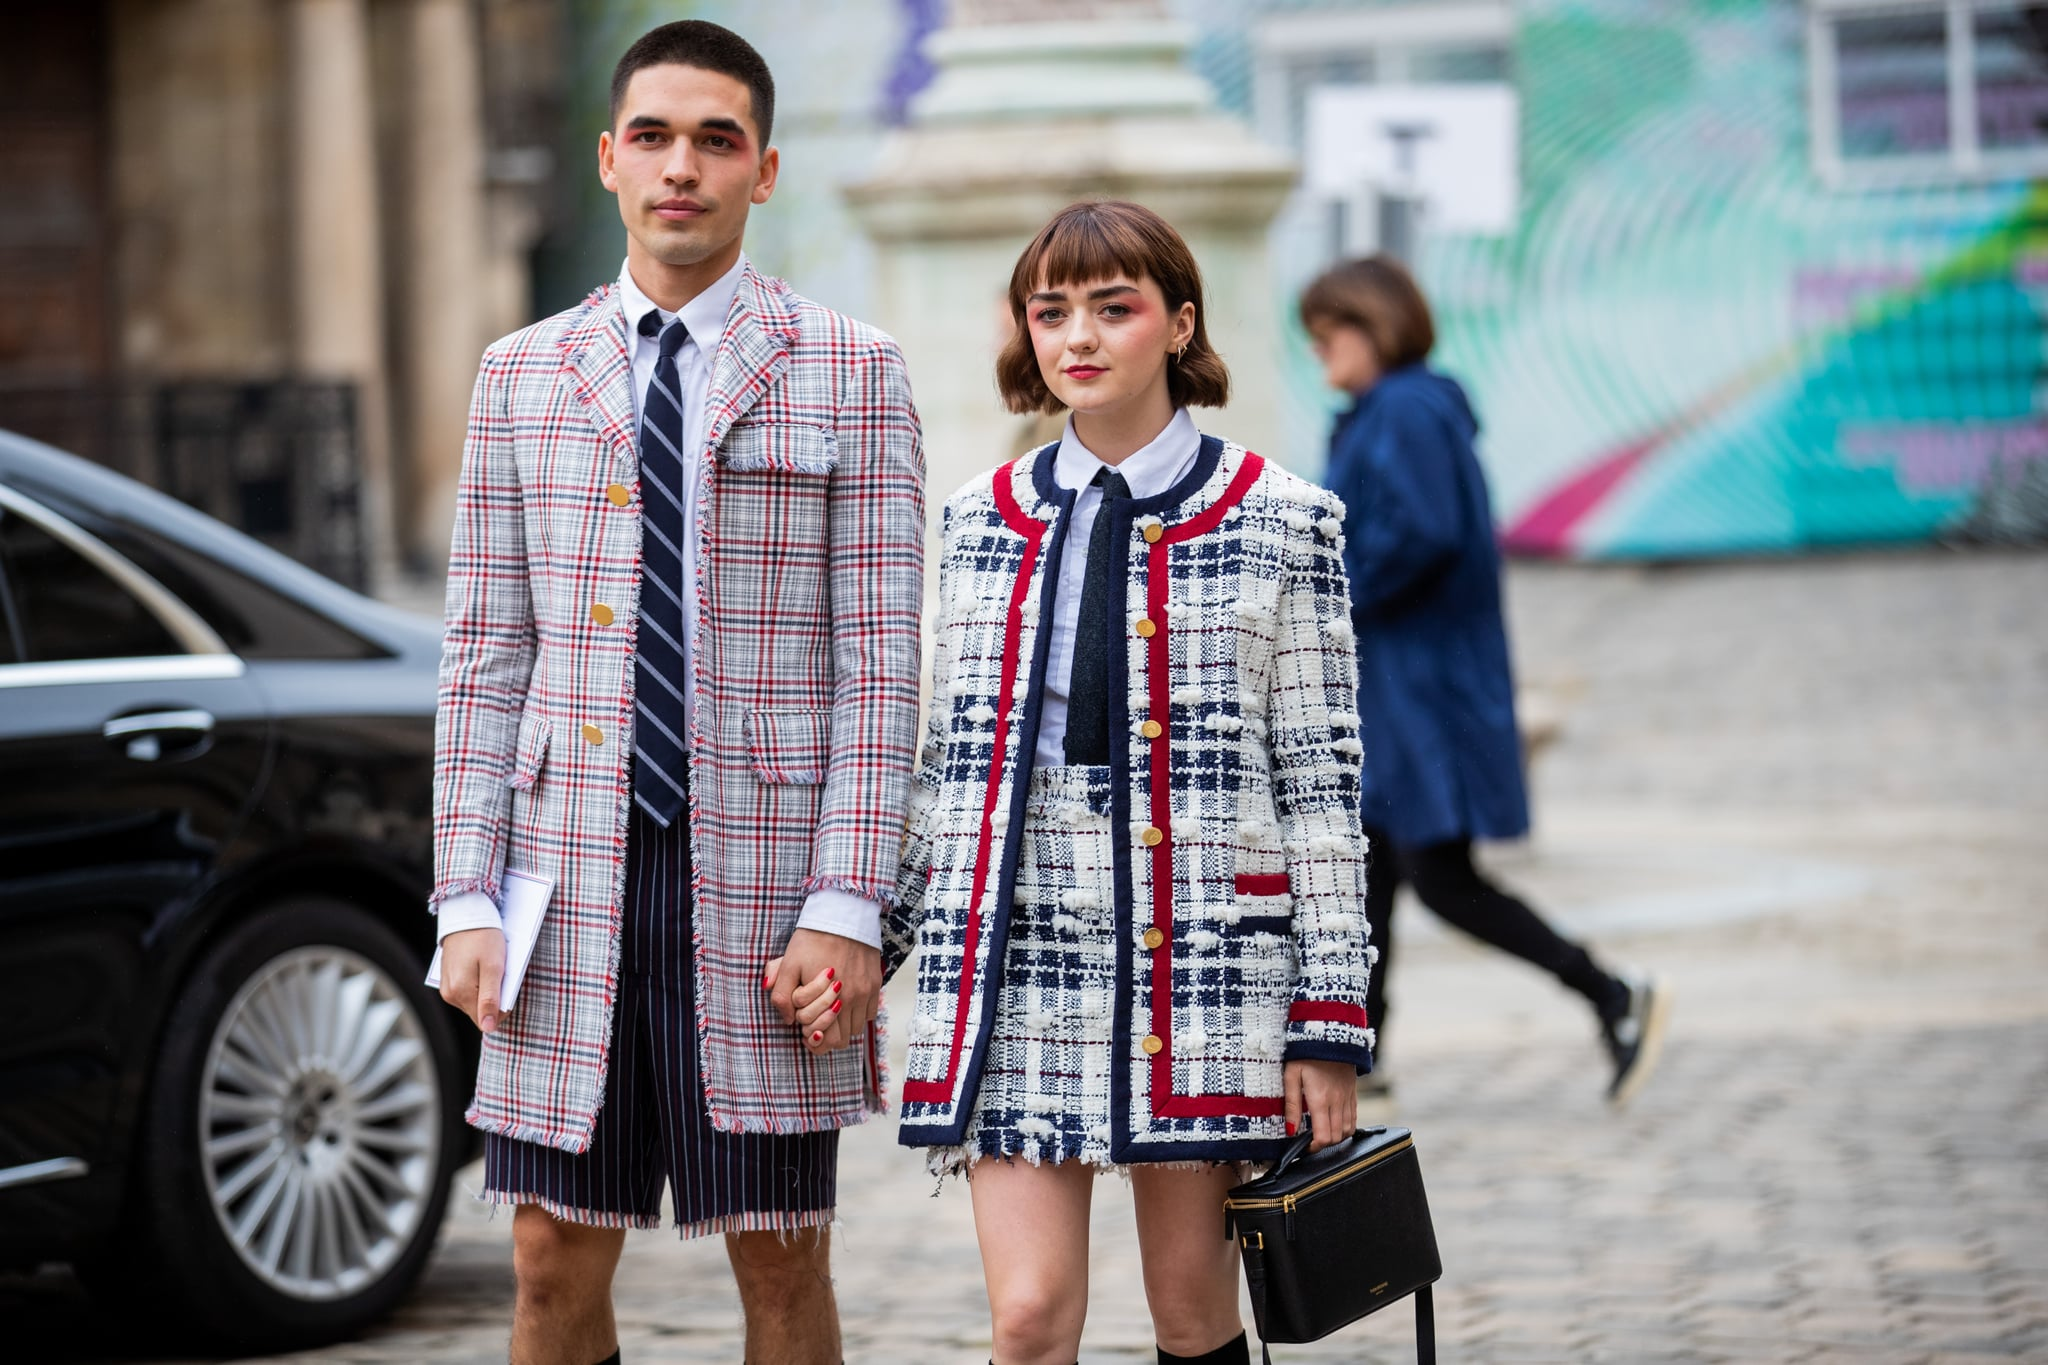 PARIS, FRANCE - SEPTEMBER 29: Couple Reuben Selby and Maisie Williams seen outside Thom Browne during Paris Fashion Week Womenswear Spring Summer 2020 on September 29, 2019 in Paris, France. (Photo by Christian Vierig/Getty Images)